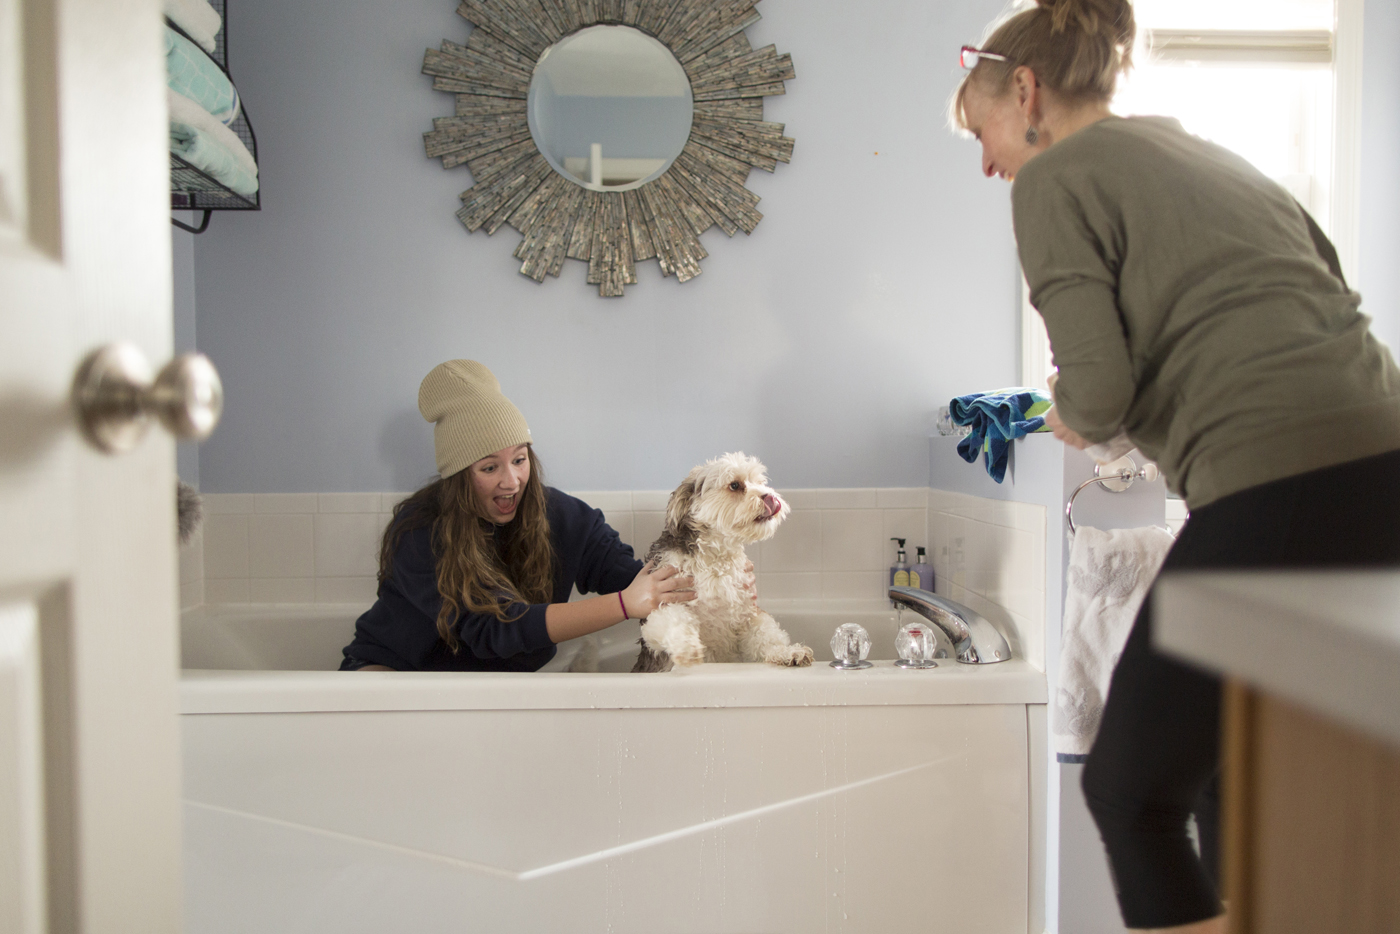 Faith watches as her daughter washes their dog.